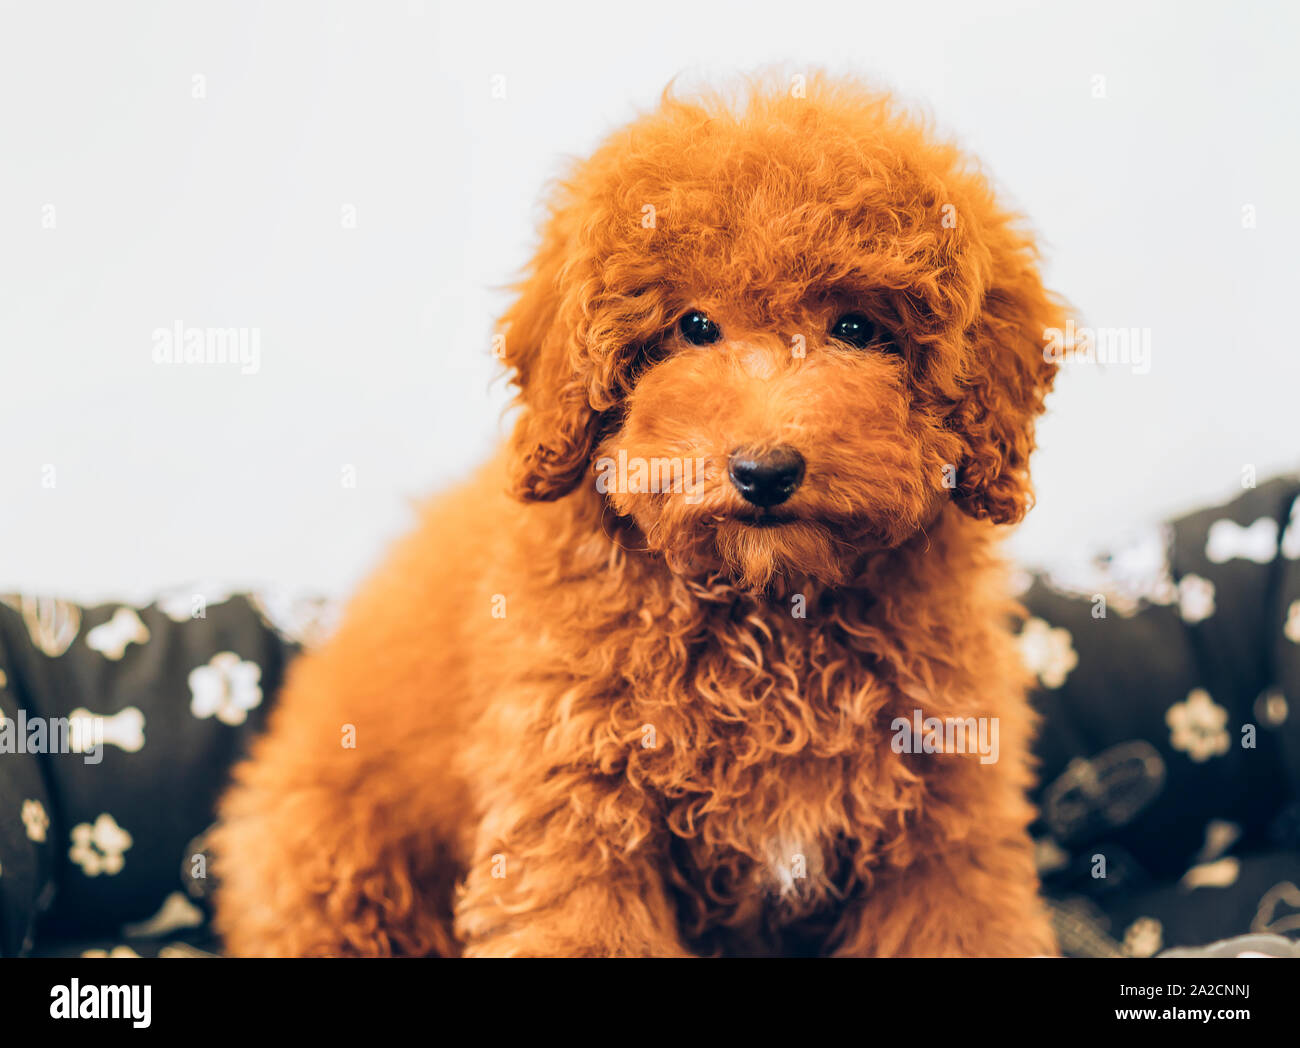 Apricot Toy Poodle Puppy Stock Photo Alamy